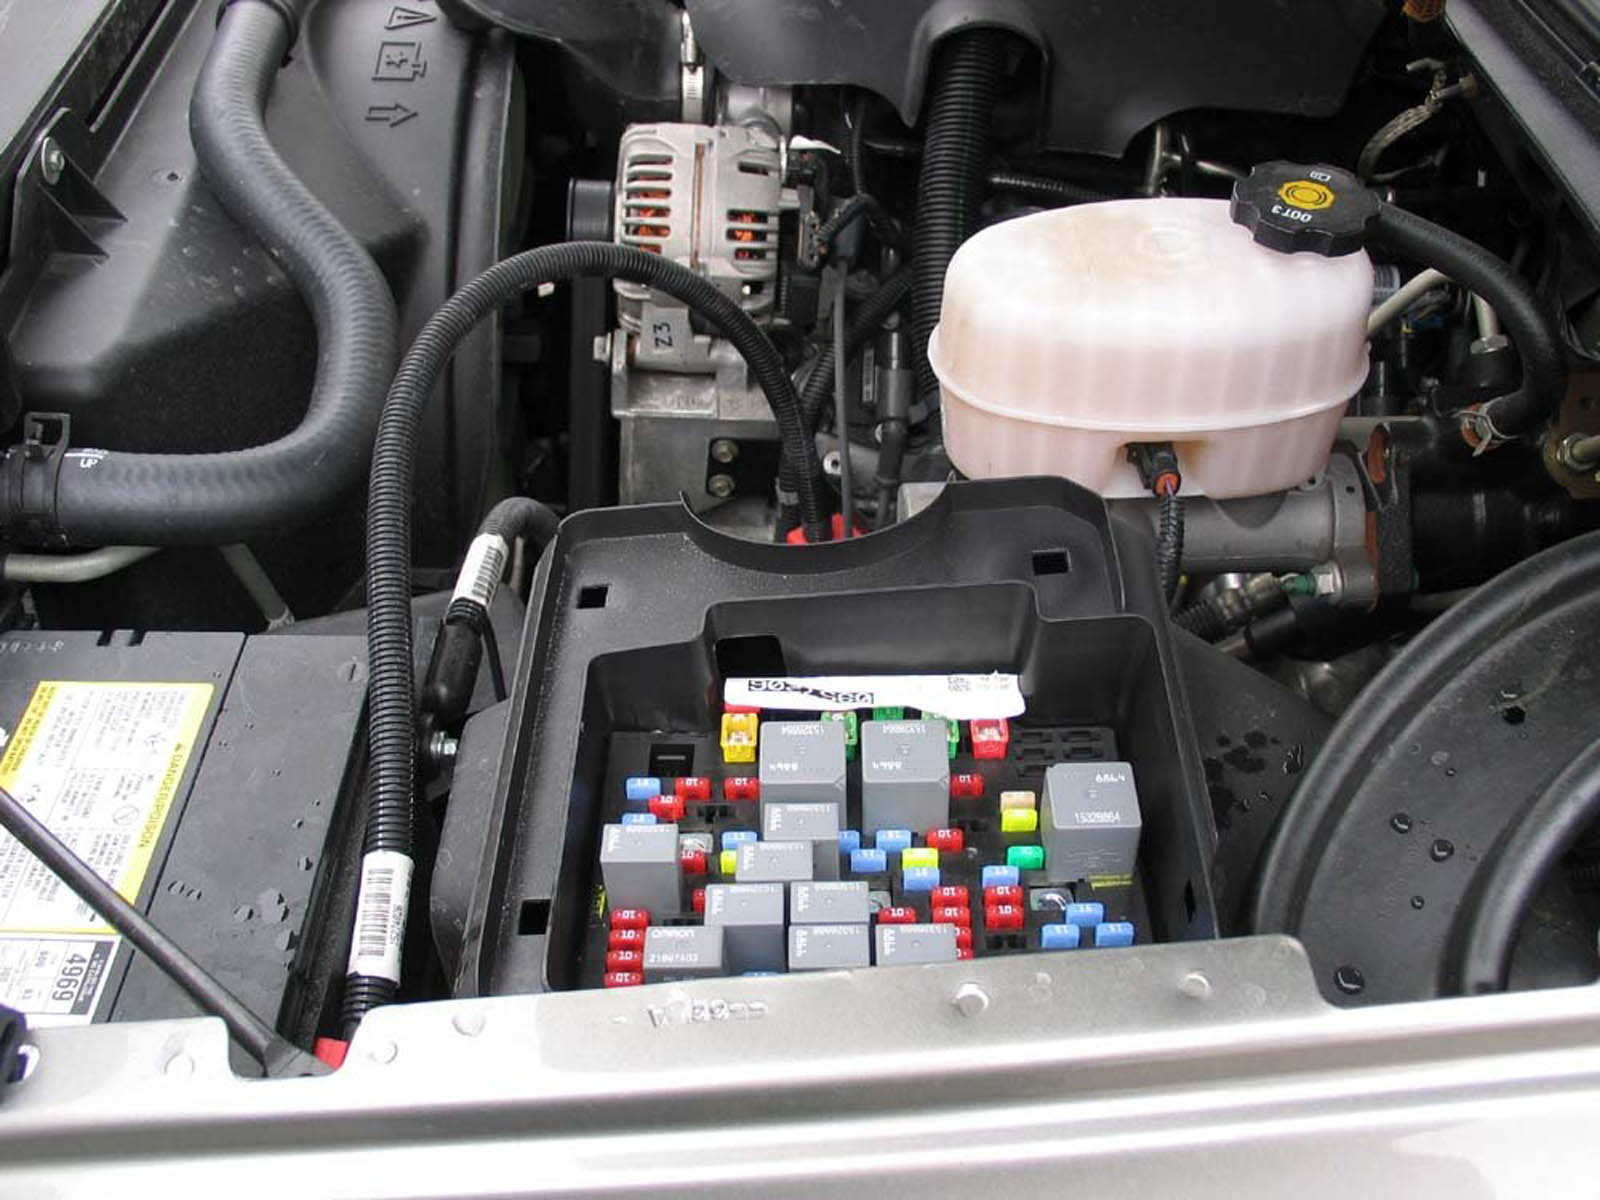 MMMay 27 Fuse Box 04 69845 chevrolet silverado gmt800 1999 2006 fuse box diagram chevroletforum fuse box 2007 silverado at soozxer.org